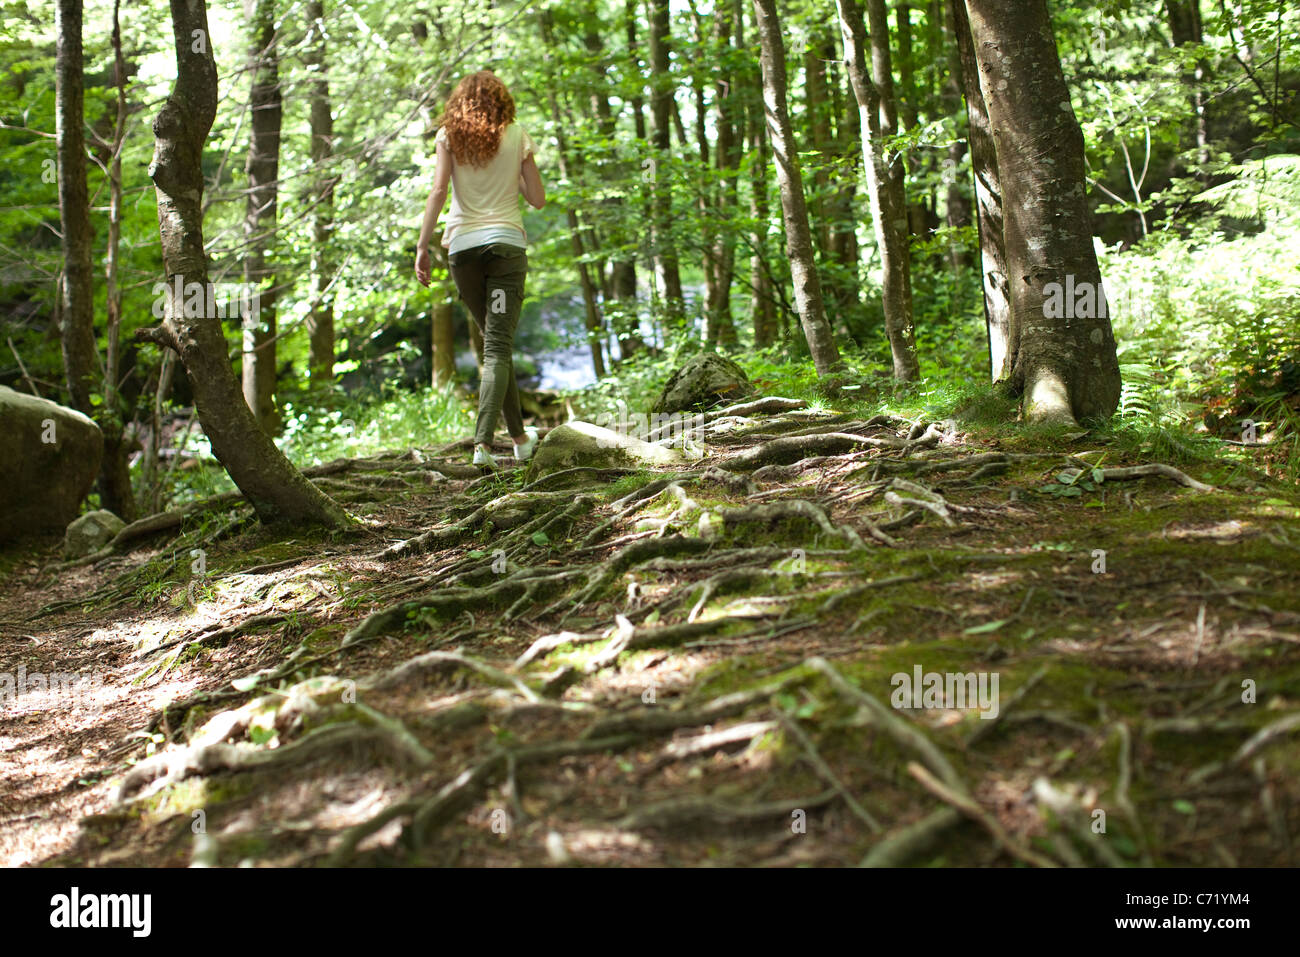 Woman walking in woods, rear view - Stock Image